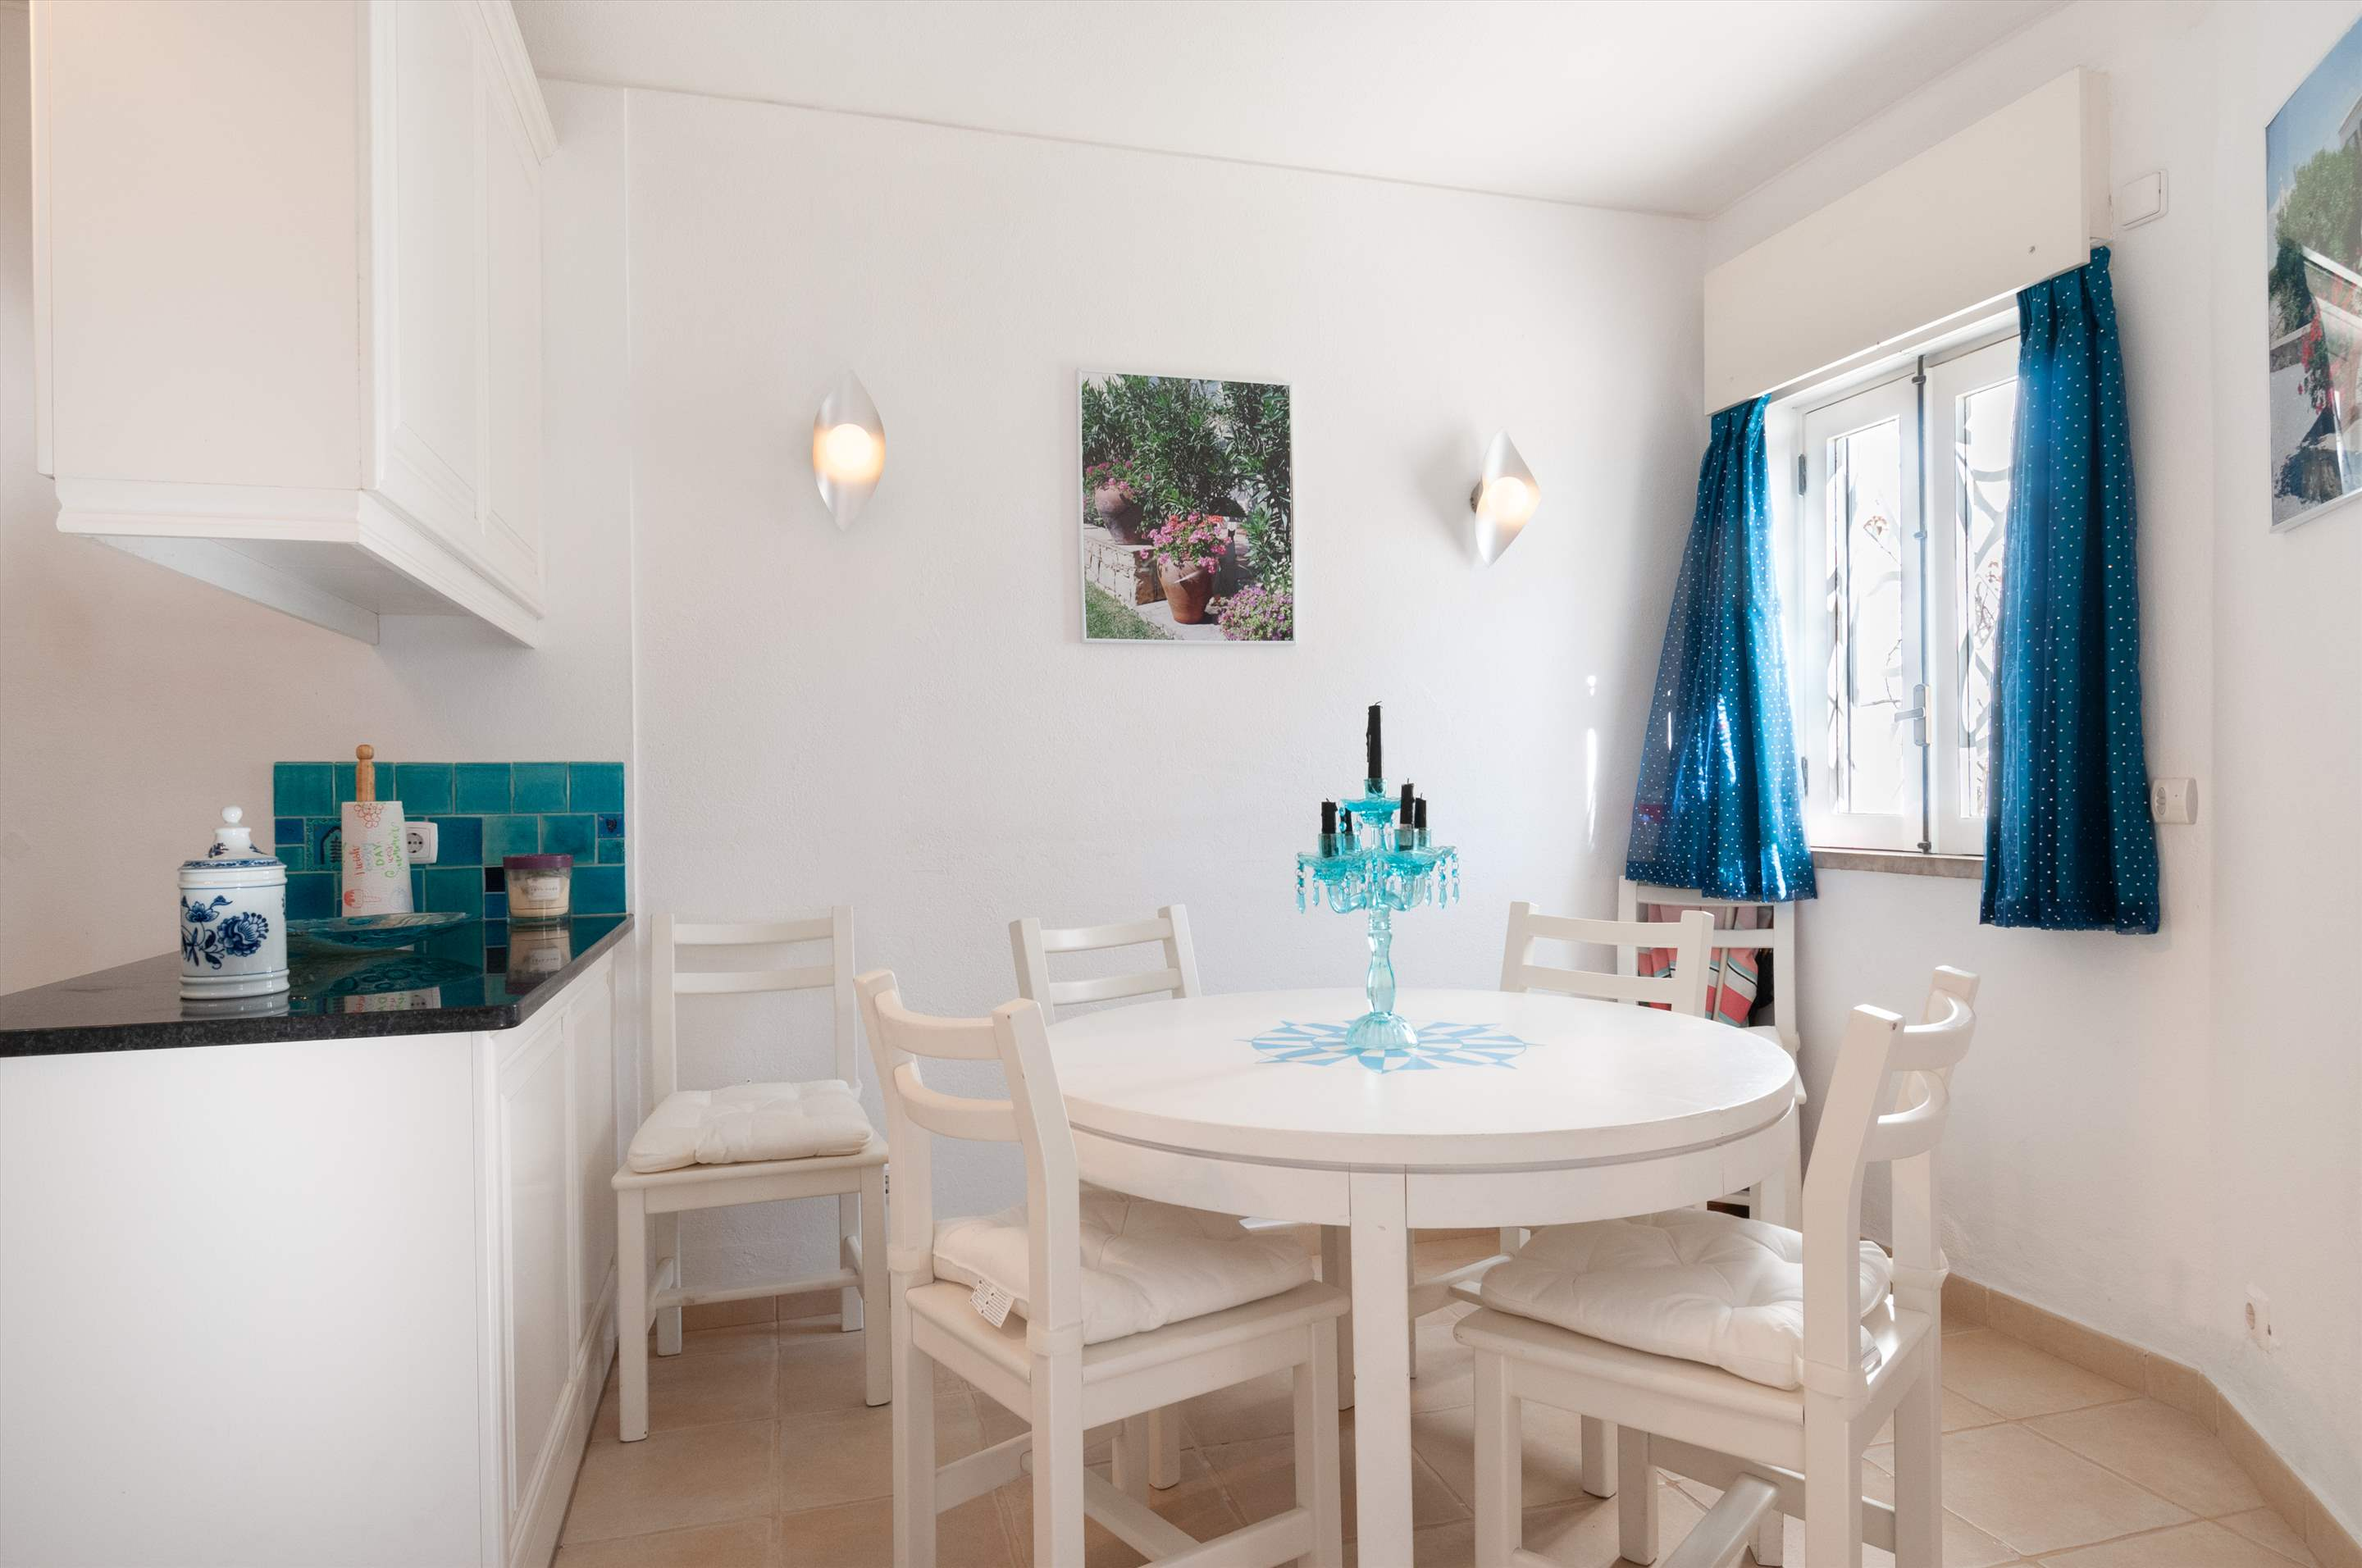 Villa Townhouse 2 Bedroom, 2 bedroom villa in Vale do Lobo, Algarve Photo #6